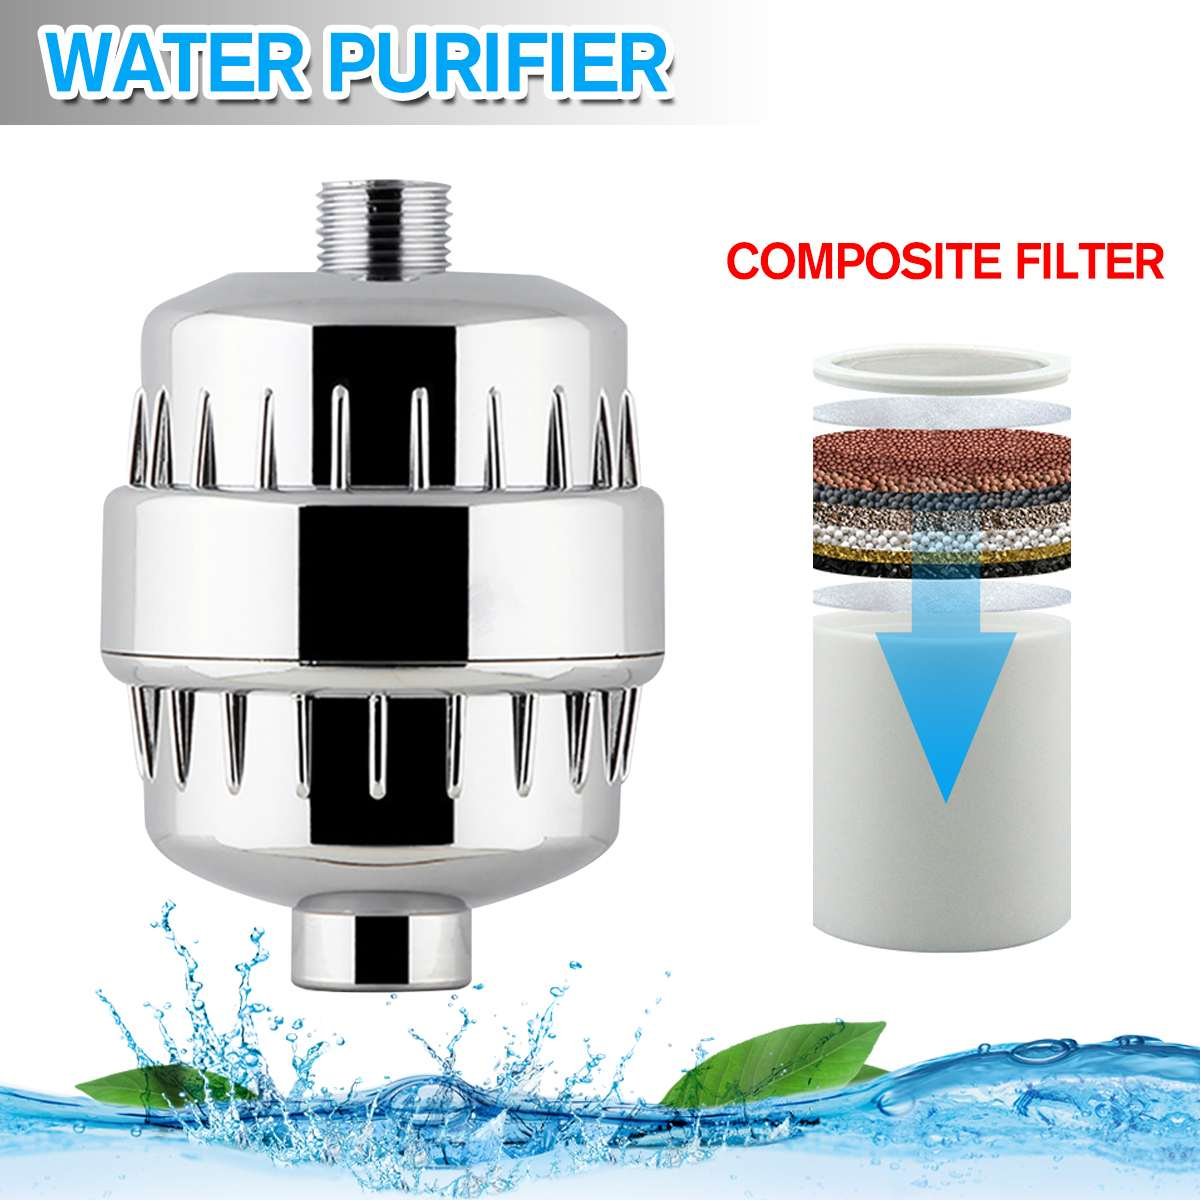 Water Purifier Bathroom Shower Filter Bathing Water Filter Purifier Water Treatment Health Softener Chlorine Water Purifier Set